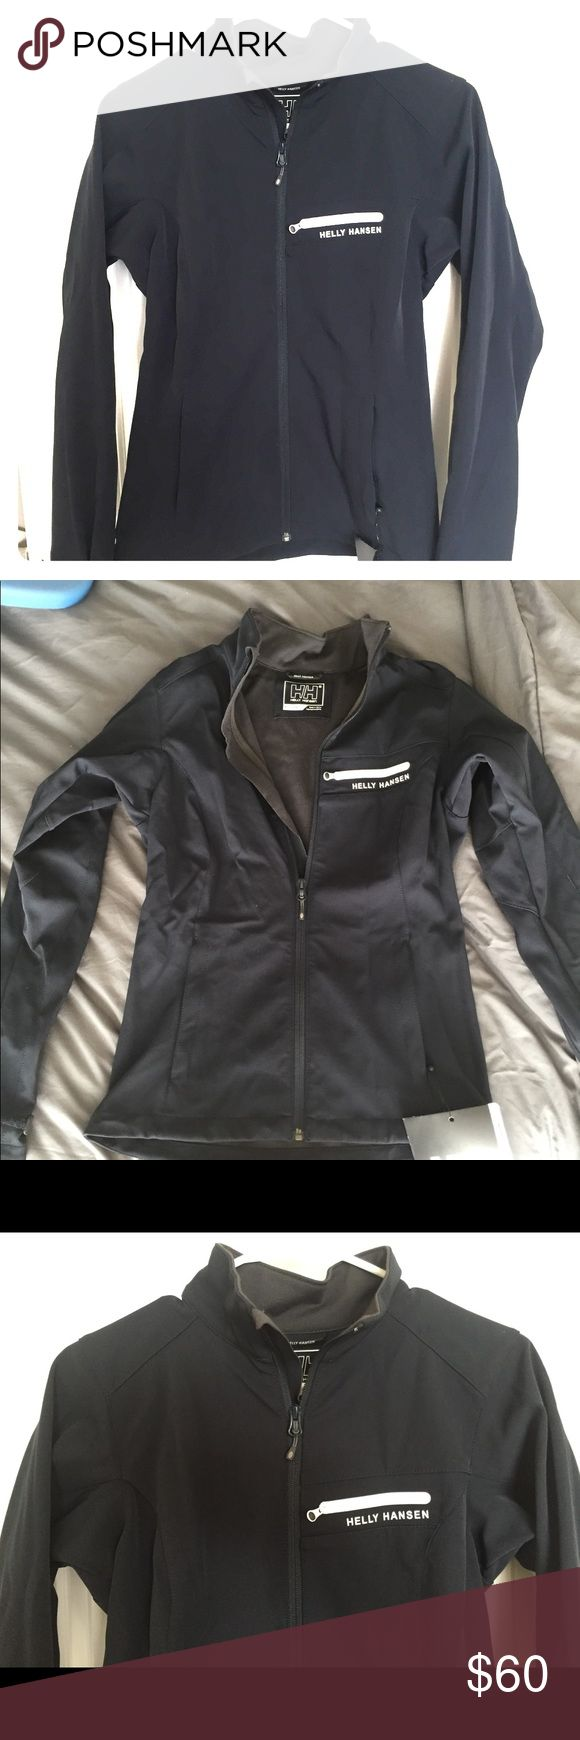 Brand new! XS Helly Hansen paramount zip up Brand new! XS Helly Hansen paramount soft shell jacket. Dark blue. Gray on inside. Warm! Bought at outlet, never worn. Waaaaaay too many jackets. Same style as Northface apex jacket. NWT. Non smoking home. Helly Hansen Jackets & Coats